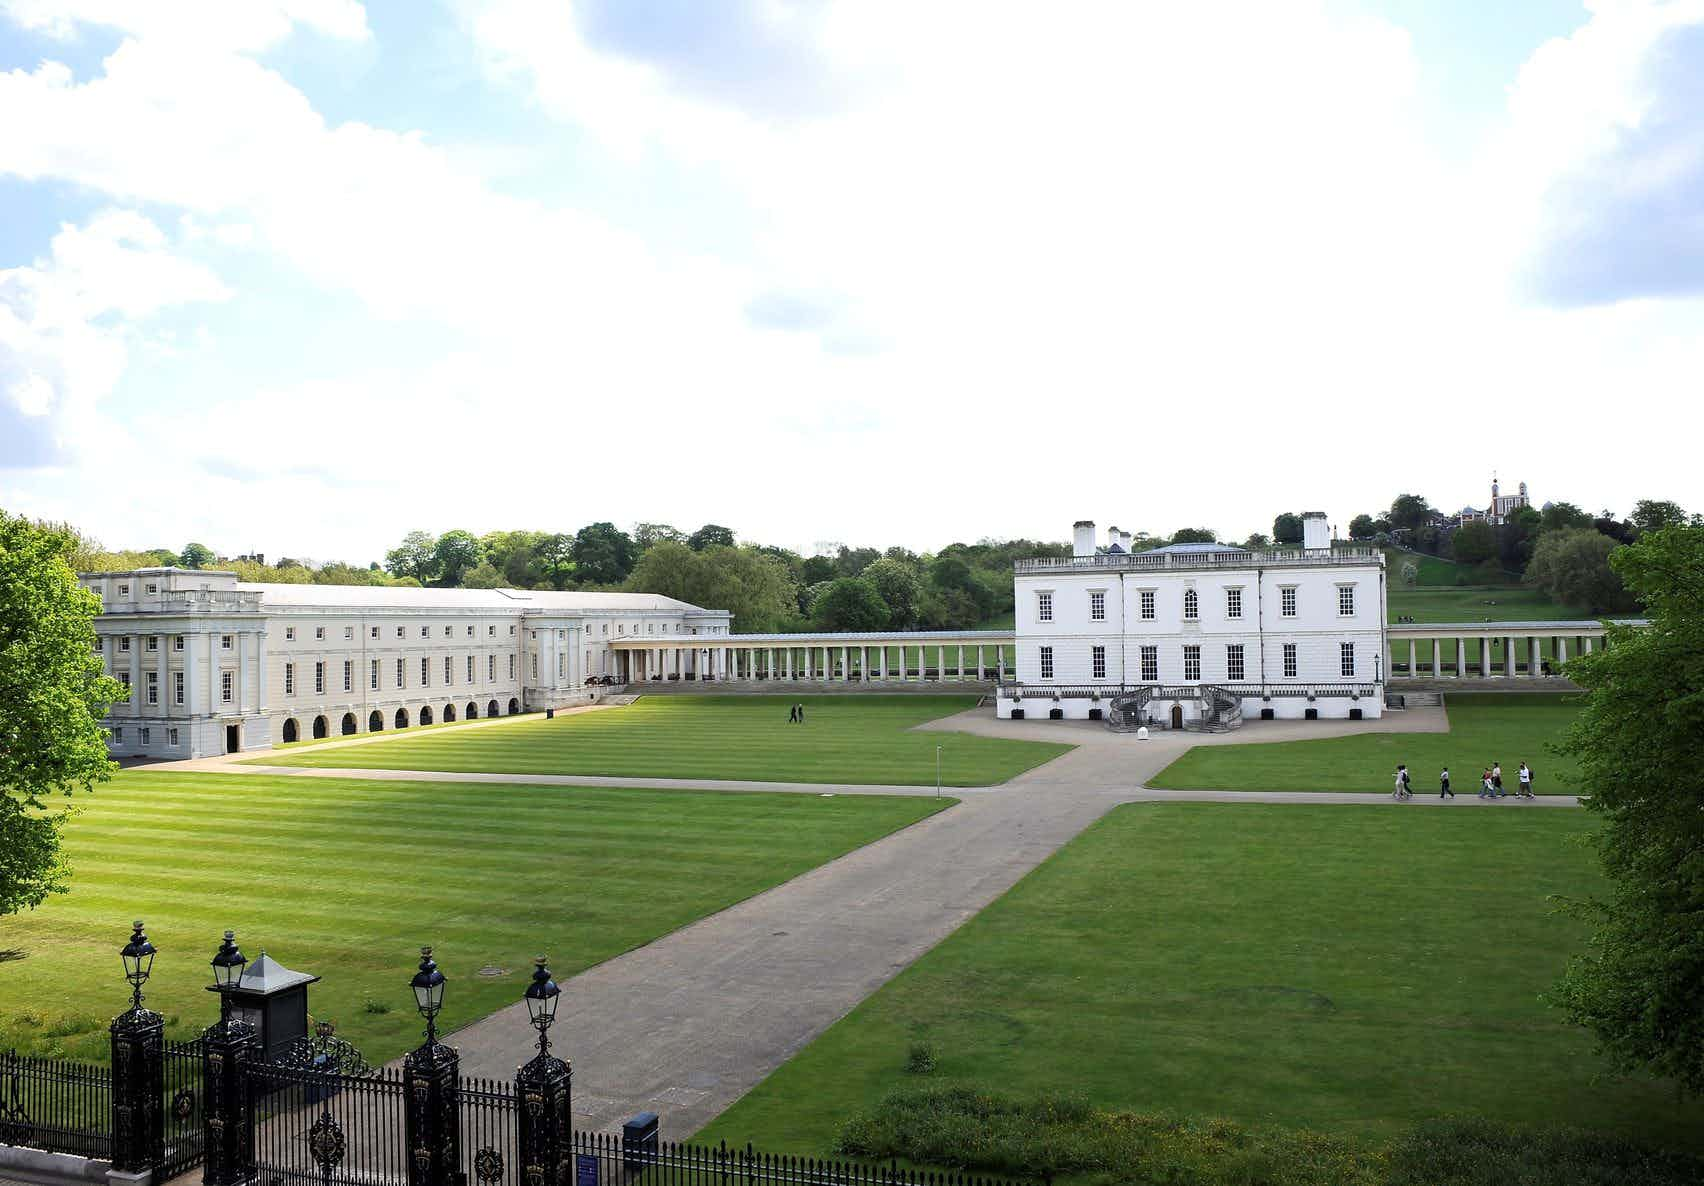 South East Lawn , The Grounds at the Royal Museums Greenwich